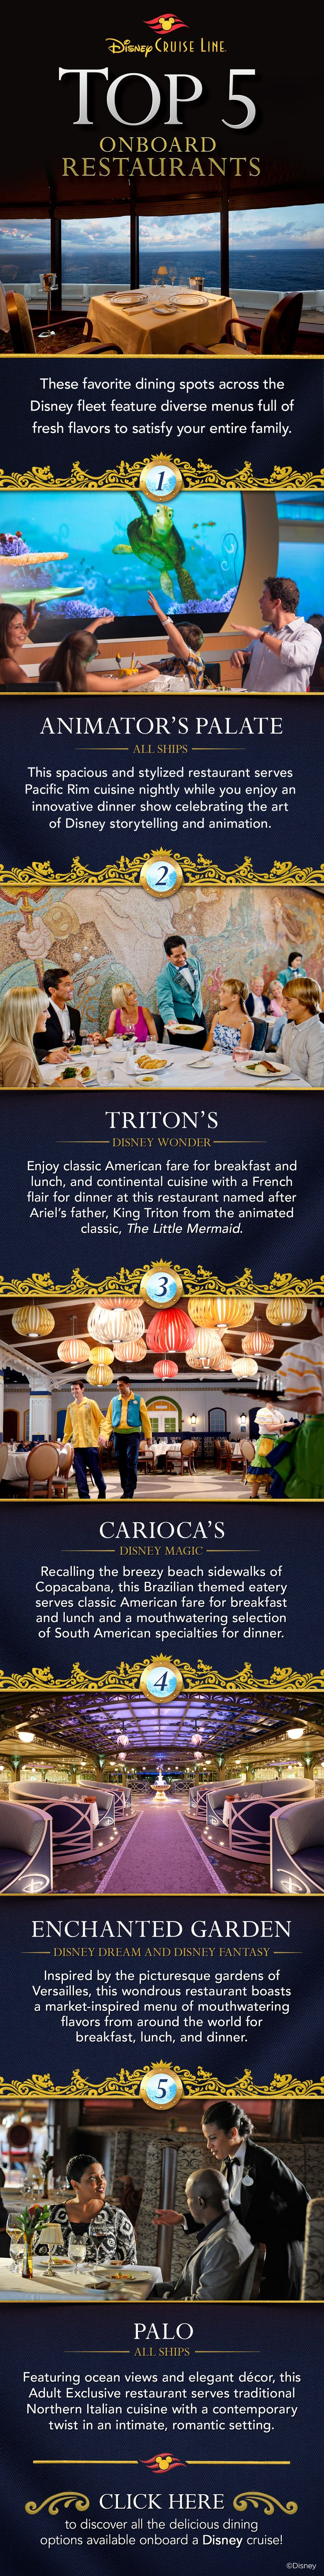 Top 5 onboard restaurants! Which is your favorite? I would like to try them all!! #DisneyPlanning at www.ourlaughingplace.com